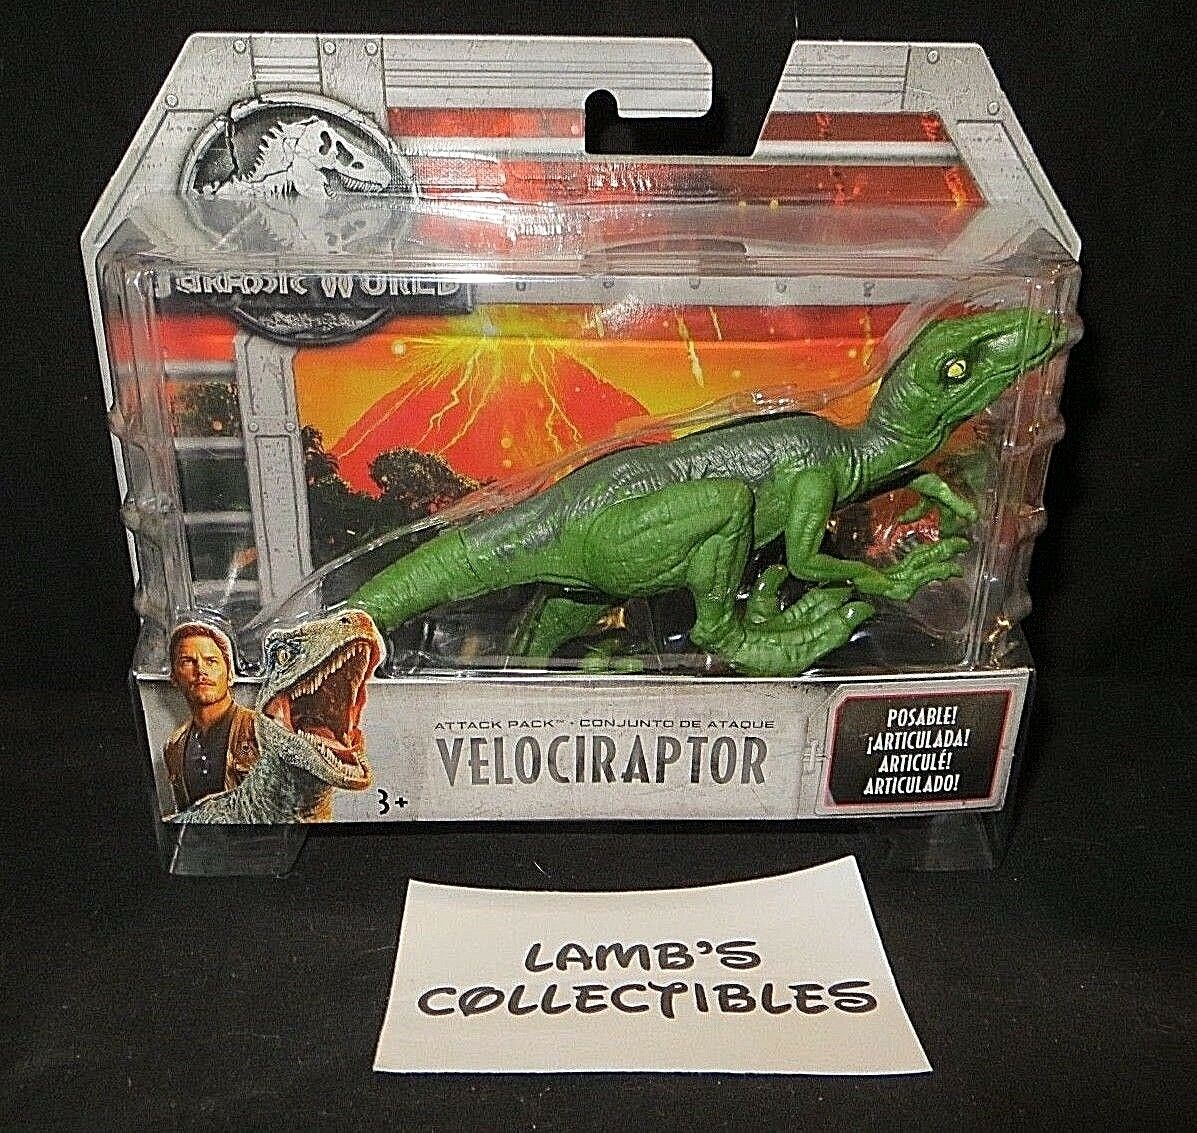 "Primary image for Jurassic World velociraptor 7"" long posable attack pack action figure toy Mattel"